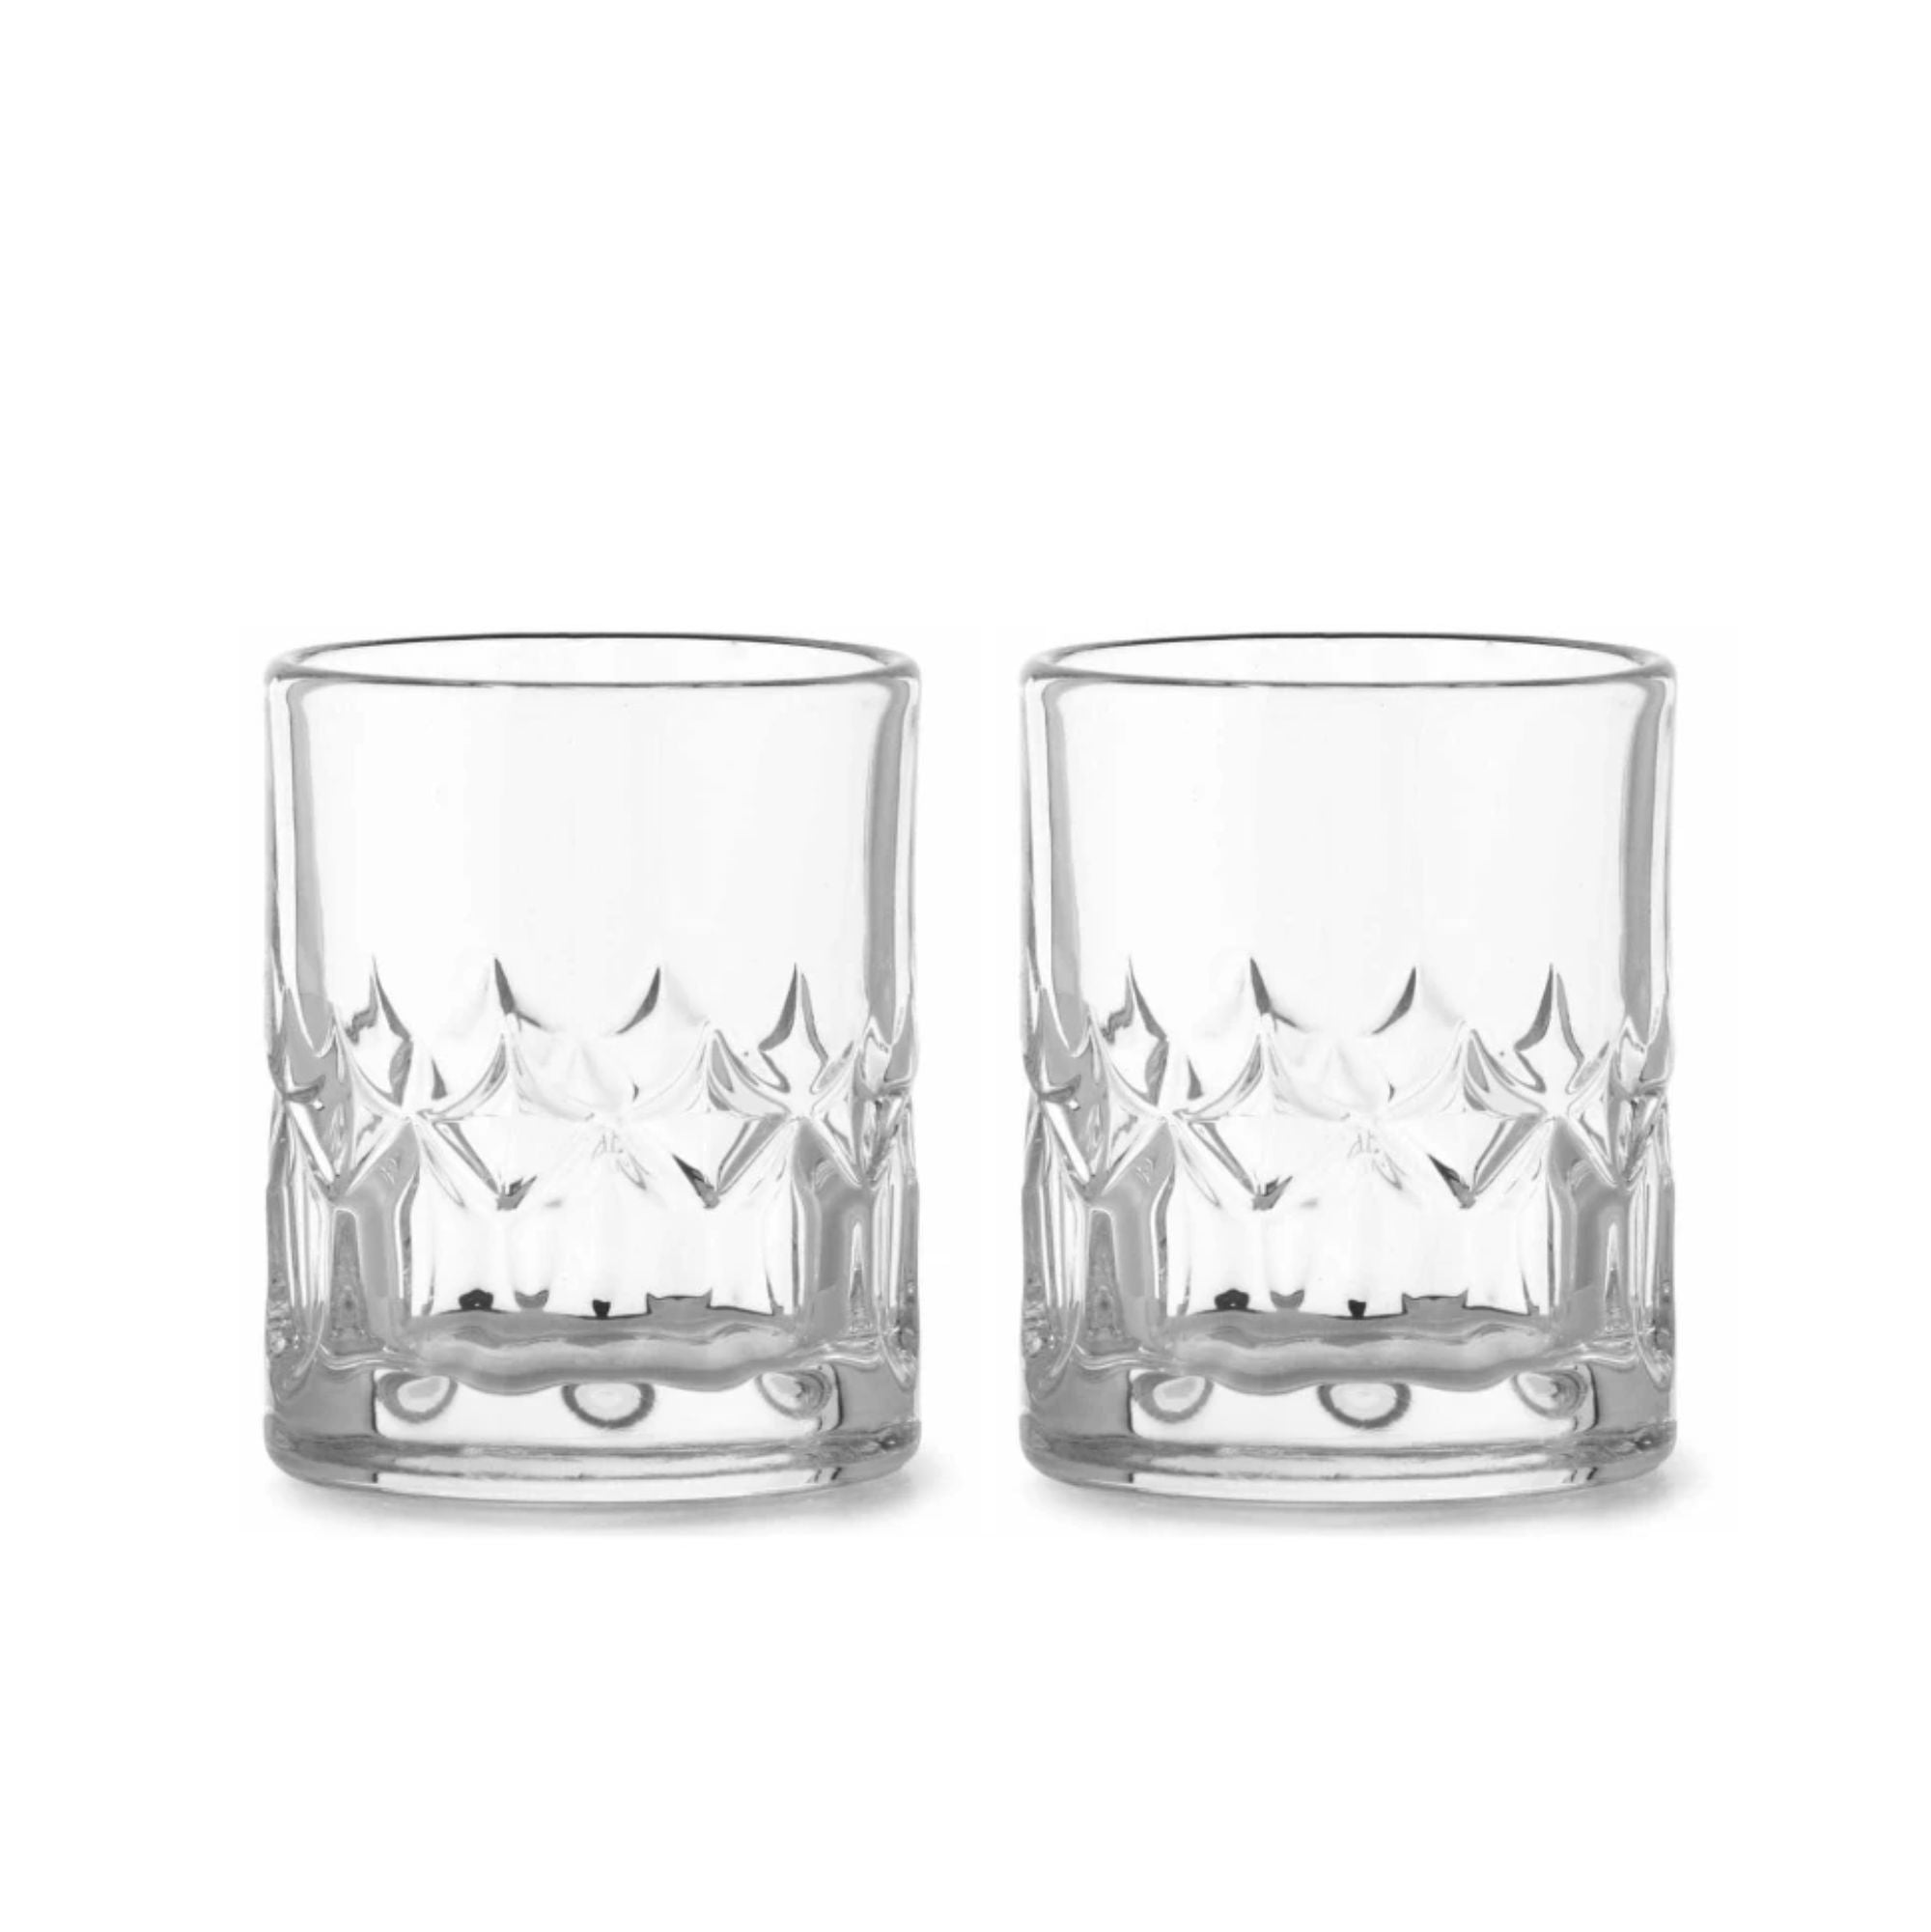 Normann Copenhagen Tivoli Spirit glasses, 23 cl, set of 2